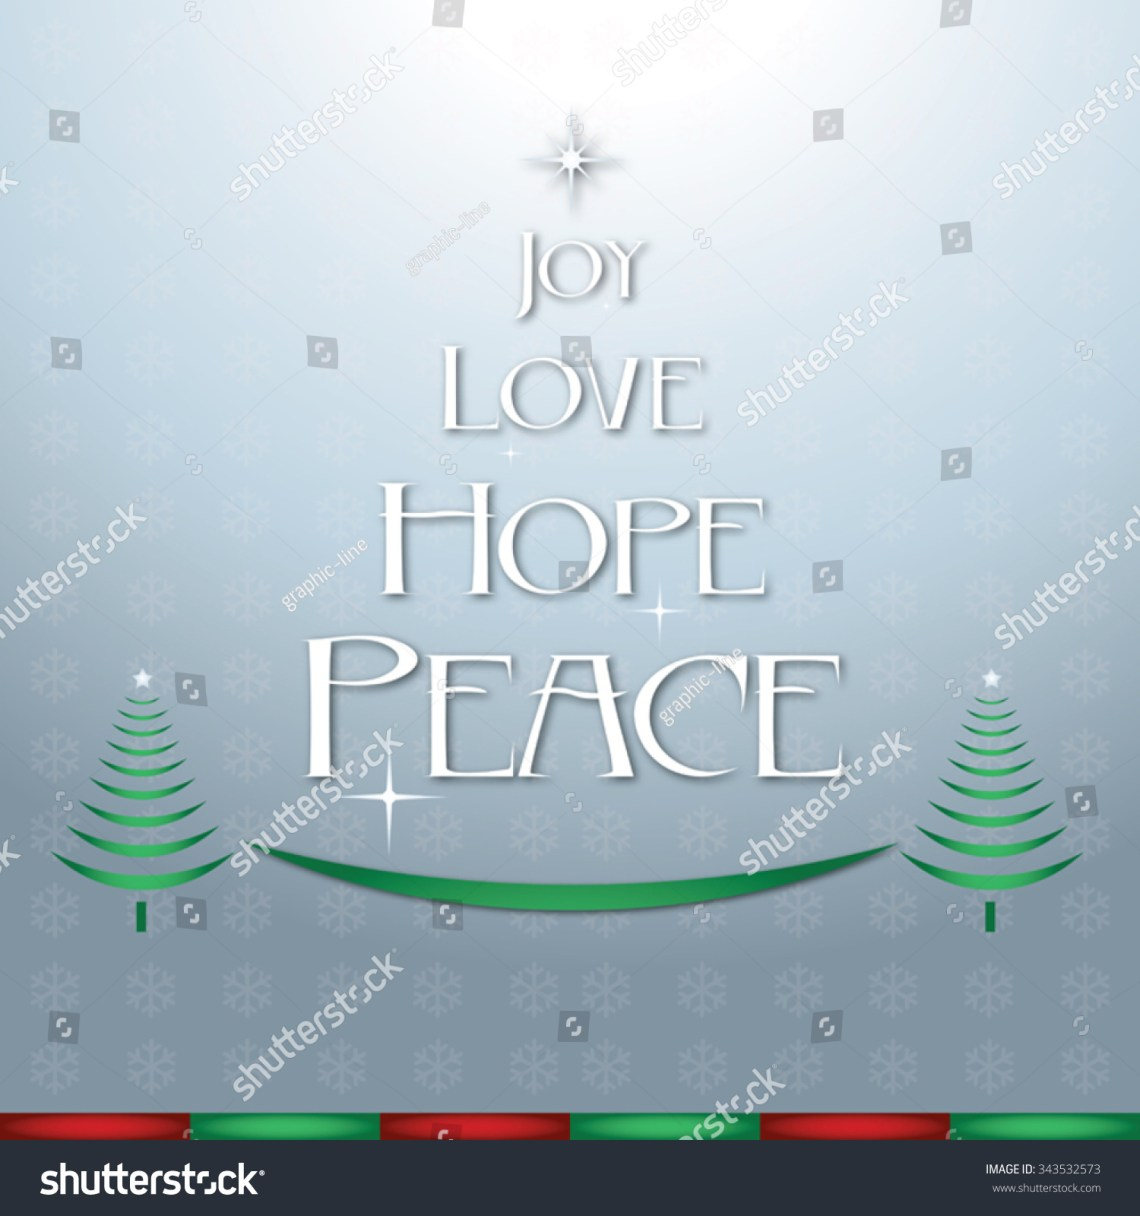 Download Joy Love Hope Peace Christmas Silver Stock Vector ...